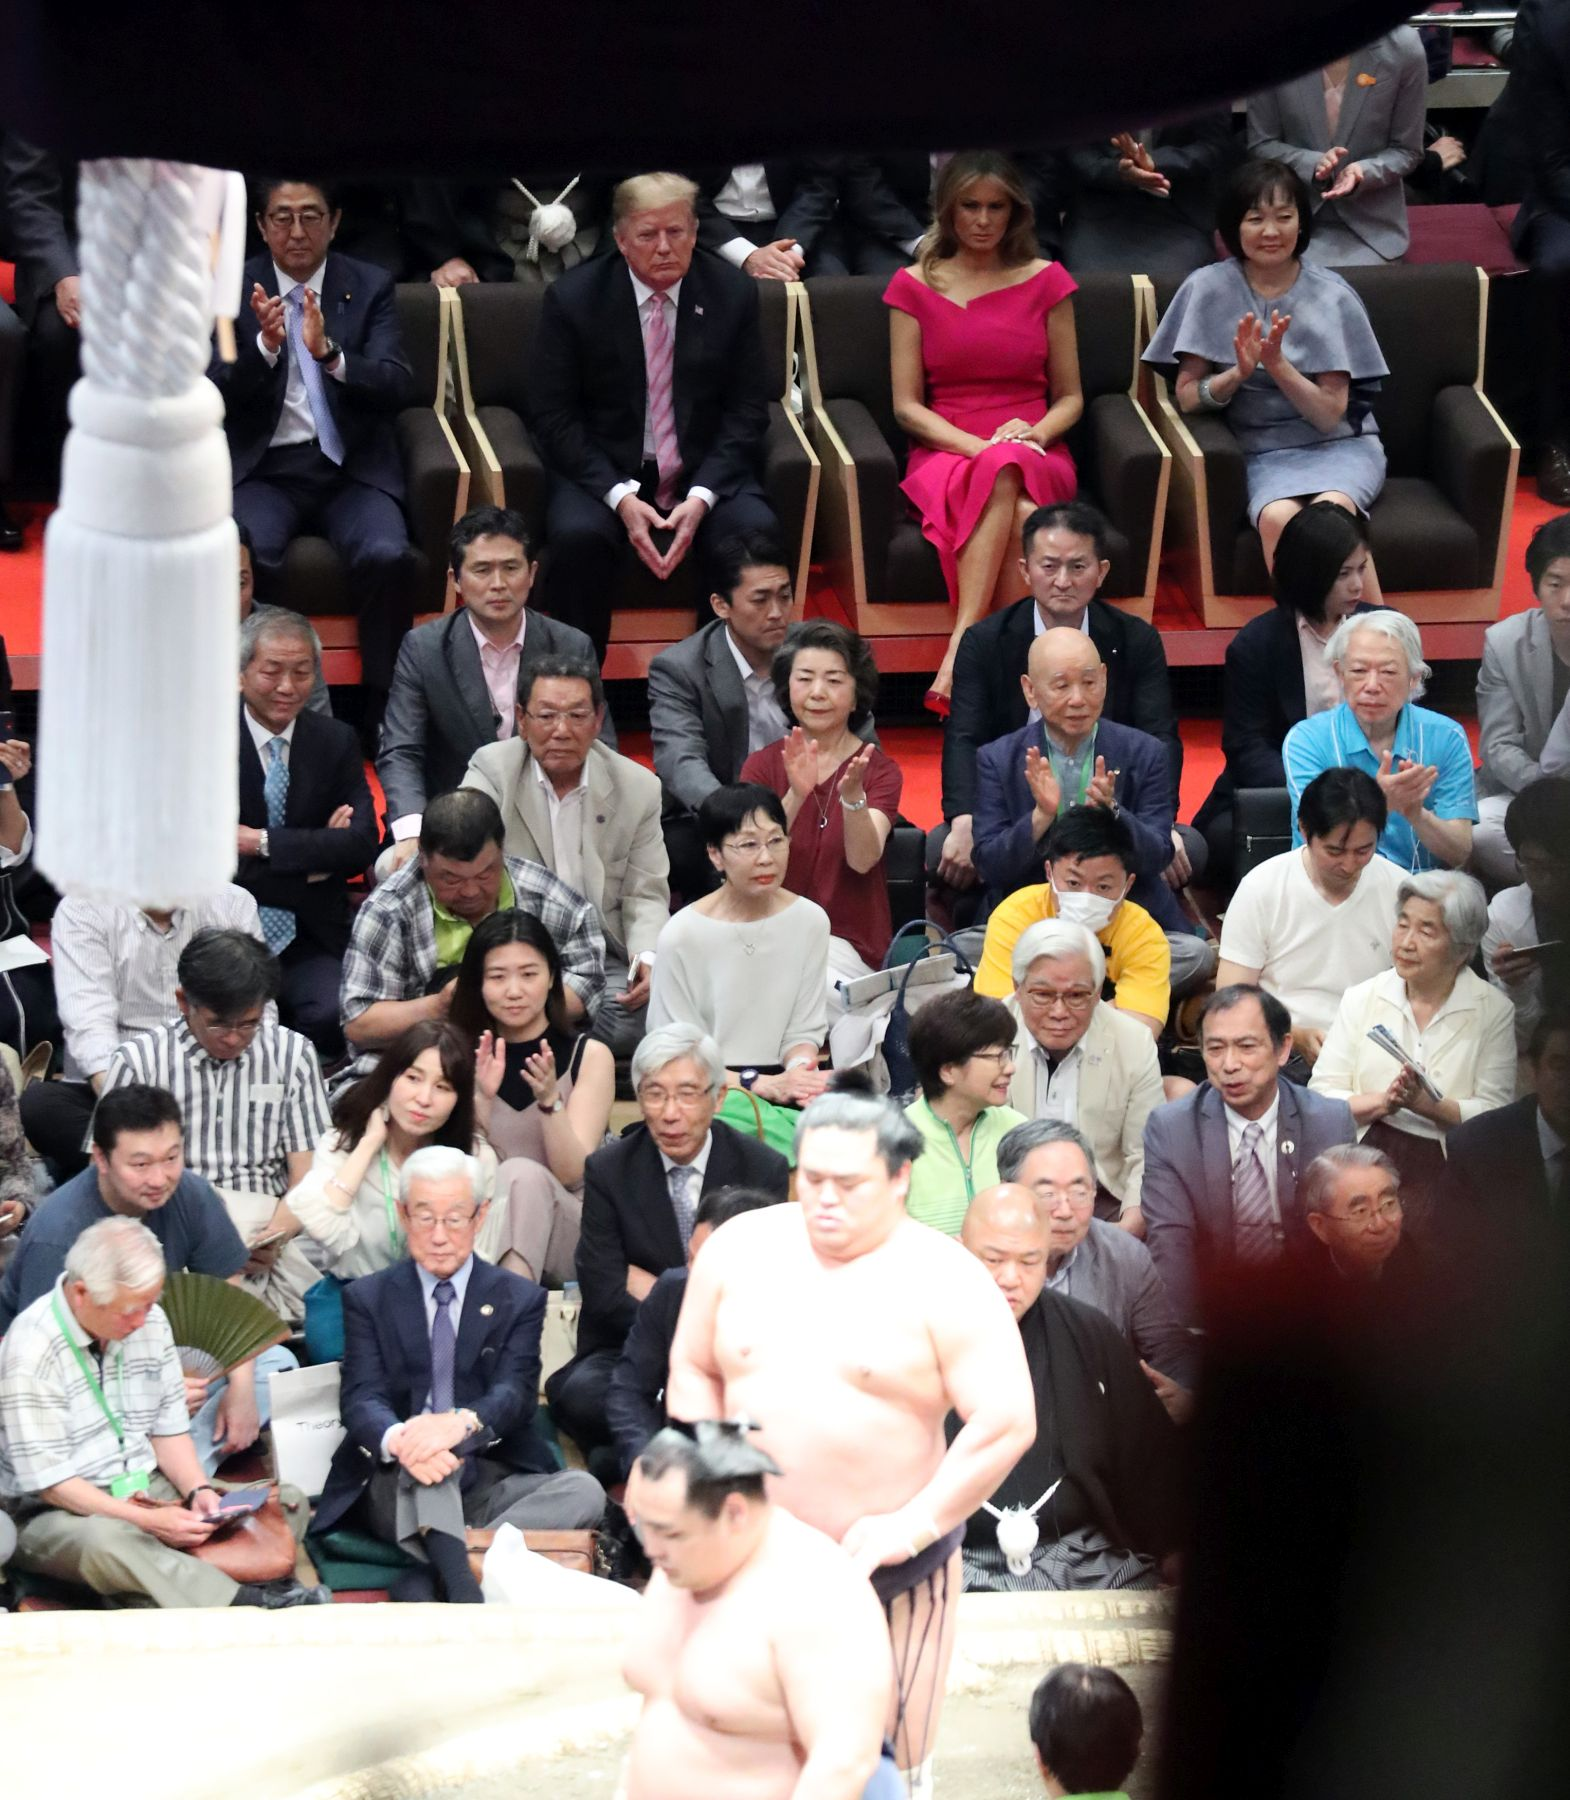 President Trump U.S. Cup to Japan Sumo Wrestler